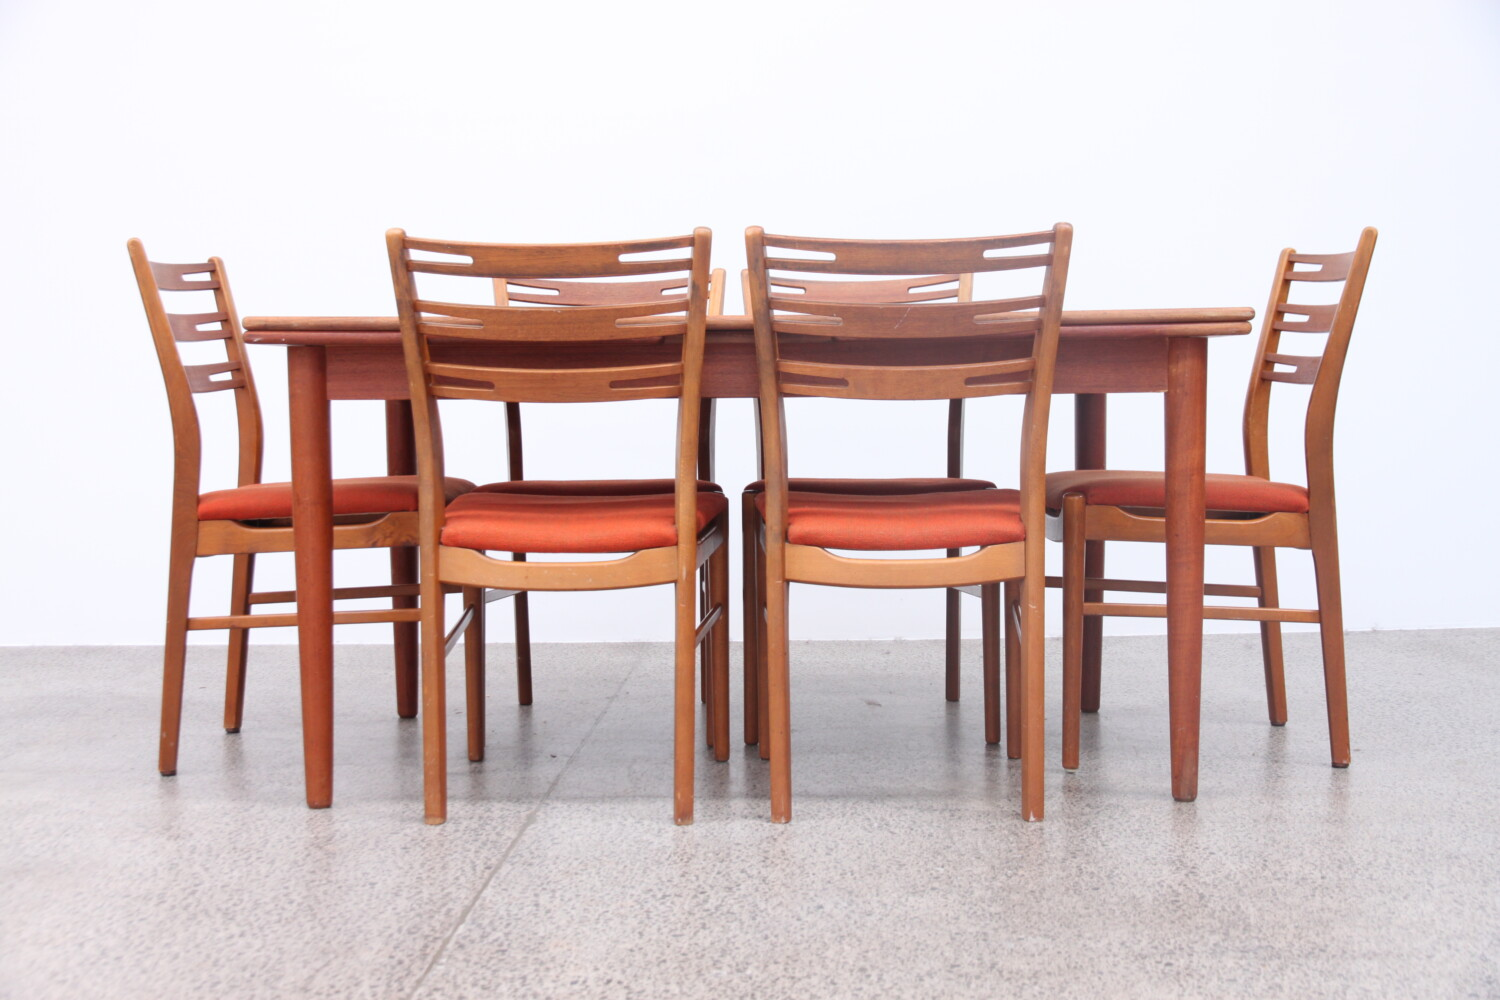 Teak Dining Chairs by Farstrup